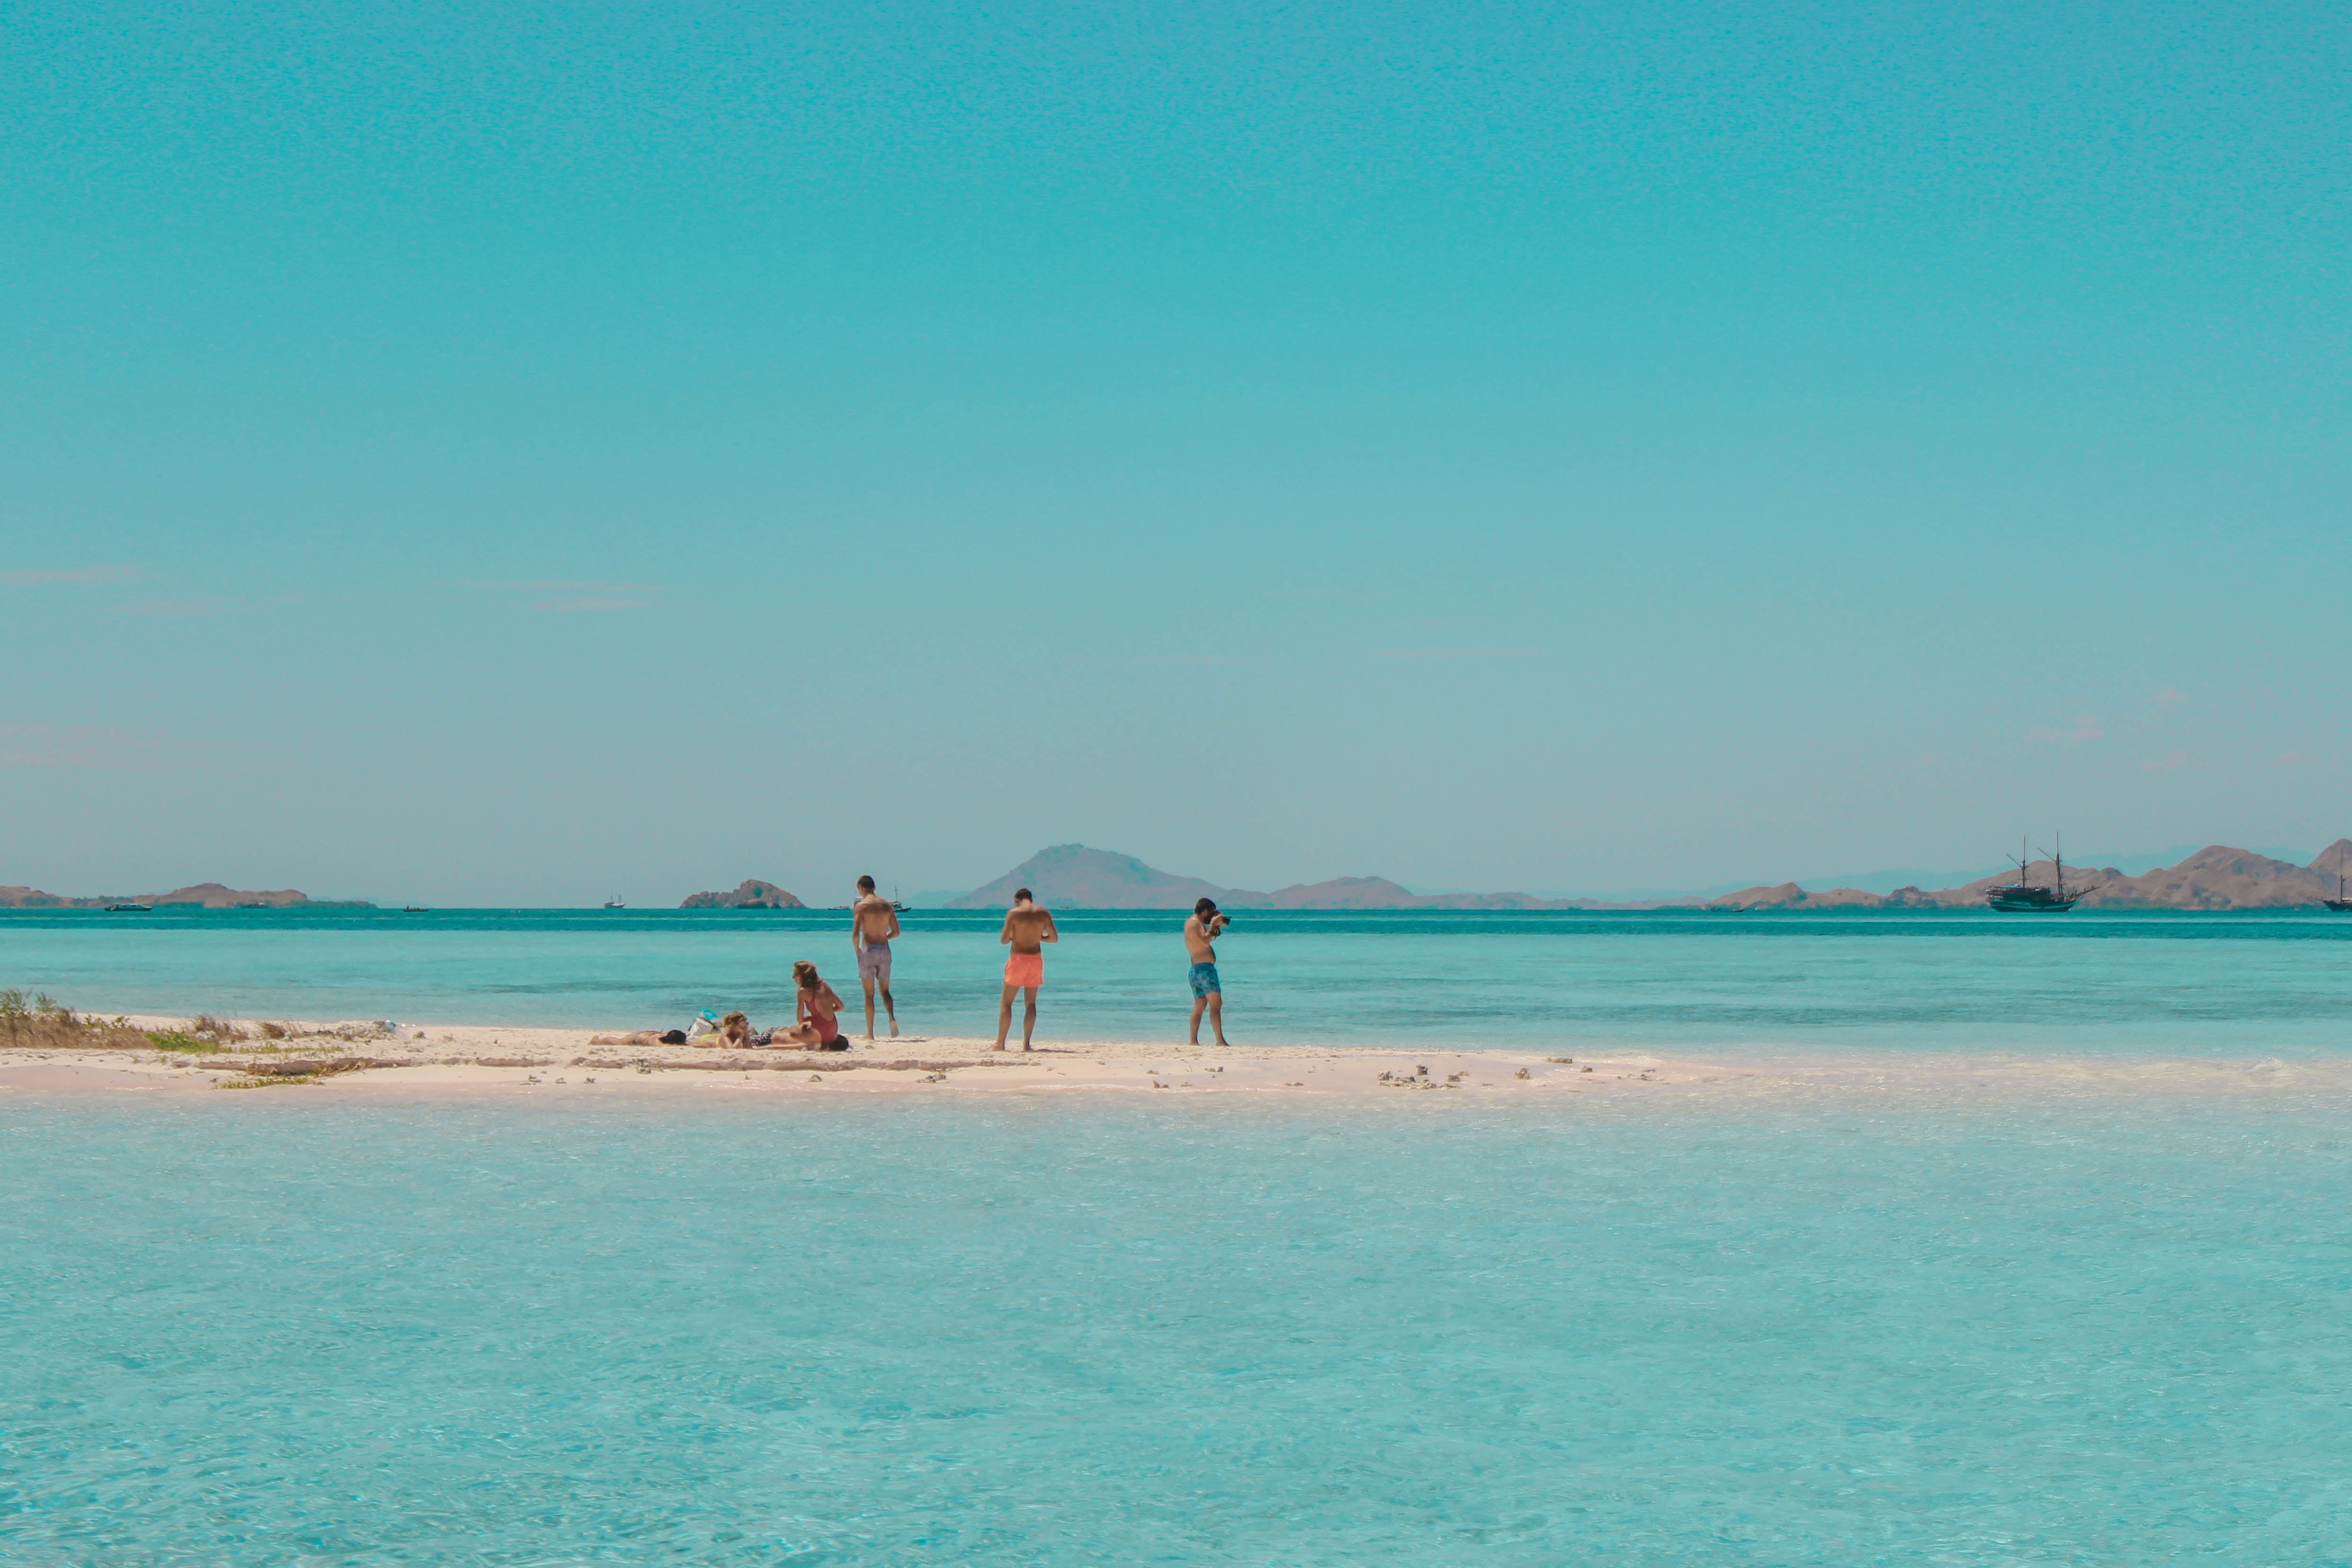 four persons standing on seashore during daytime